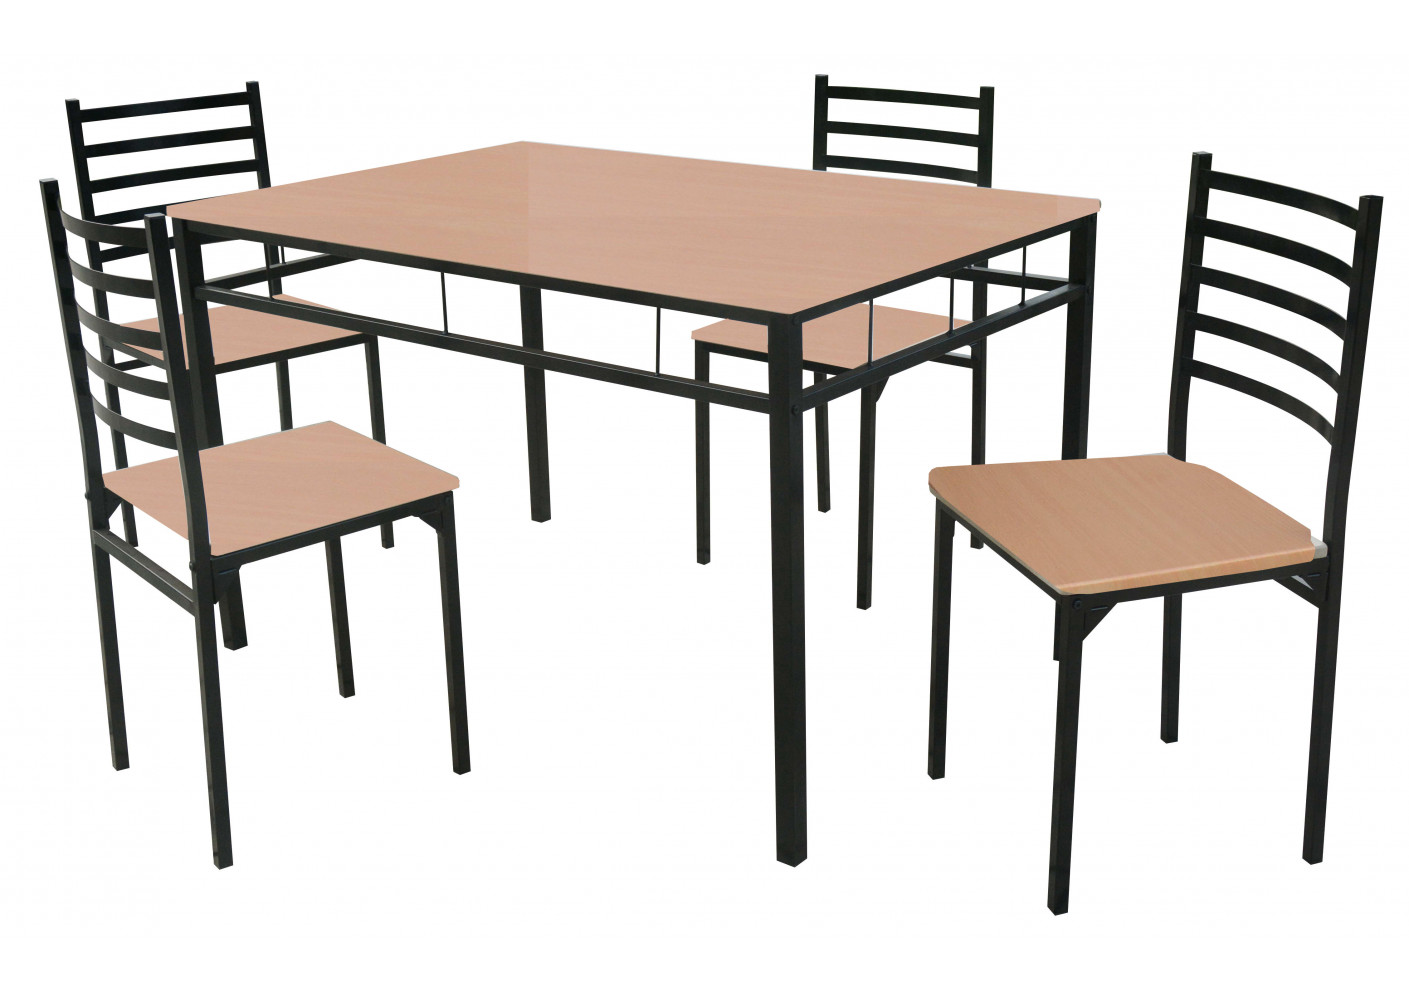 Ensemble 1 table + 4 chaises SQUARE hêtre/noir - Ensembles tables + ...